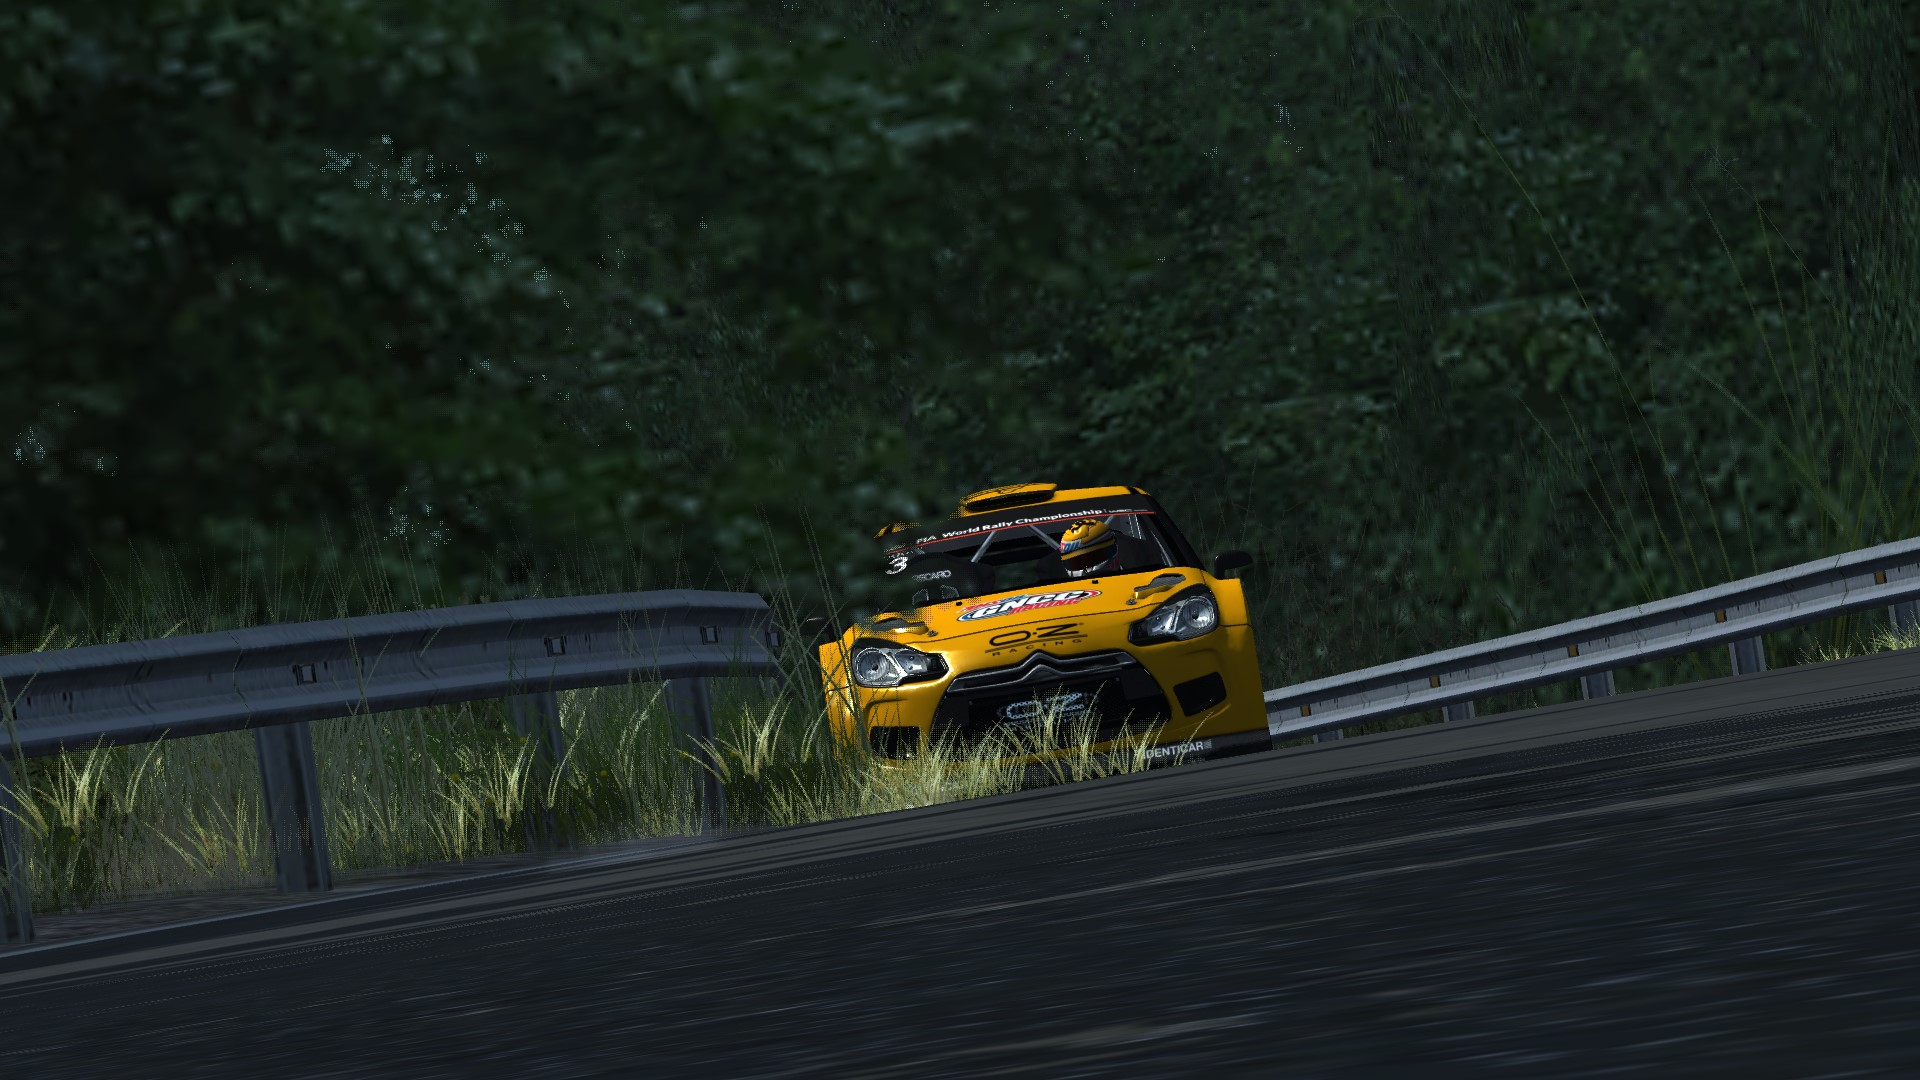 Screenshot_ds3_wrc_2015_hillclimb_moya_20-2-116-21-38-10.jpg